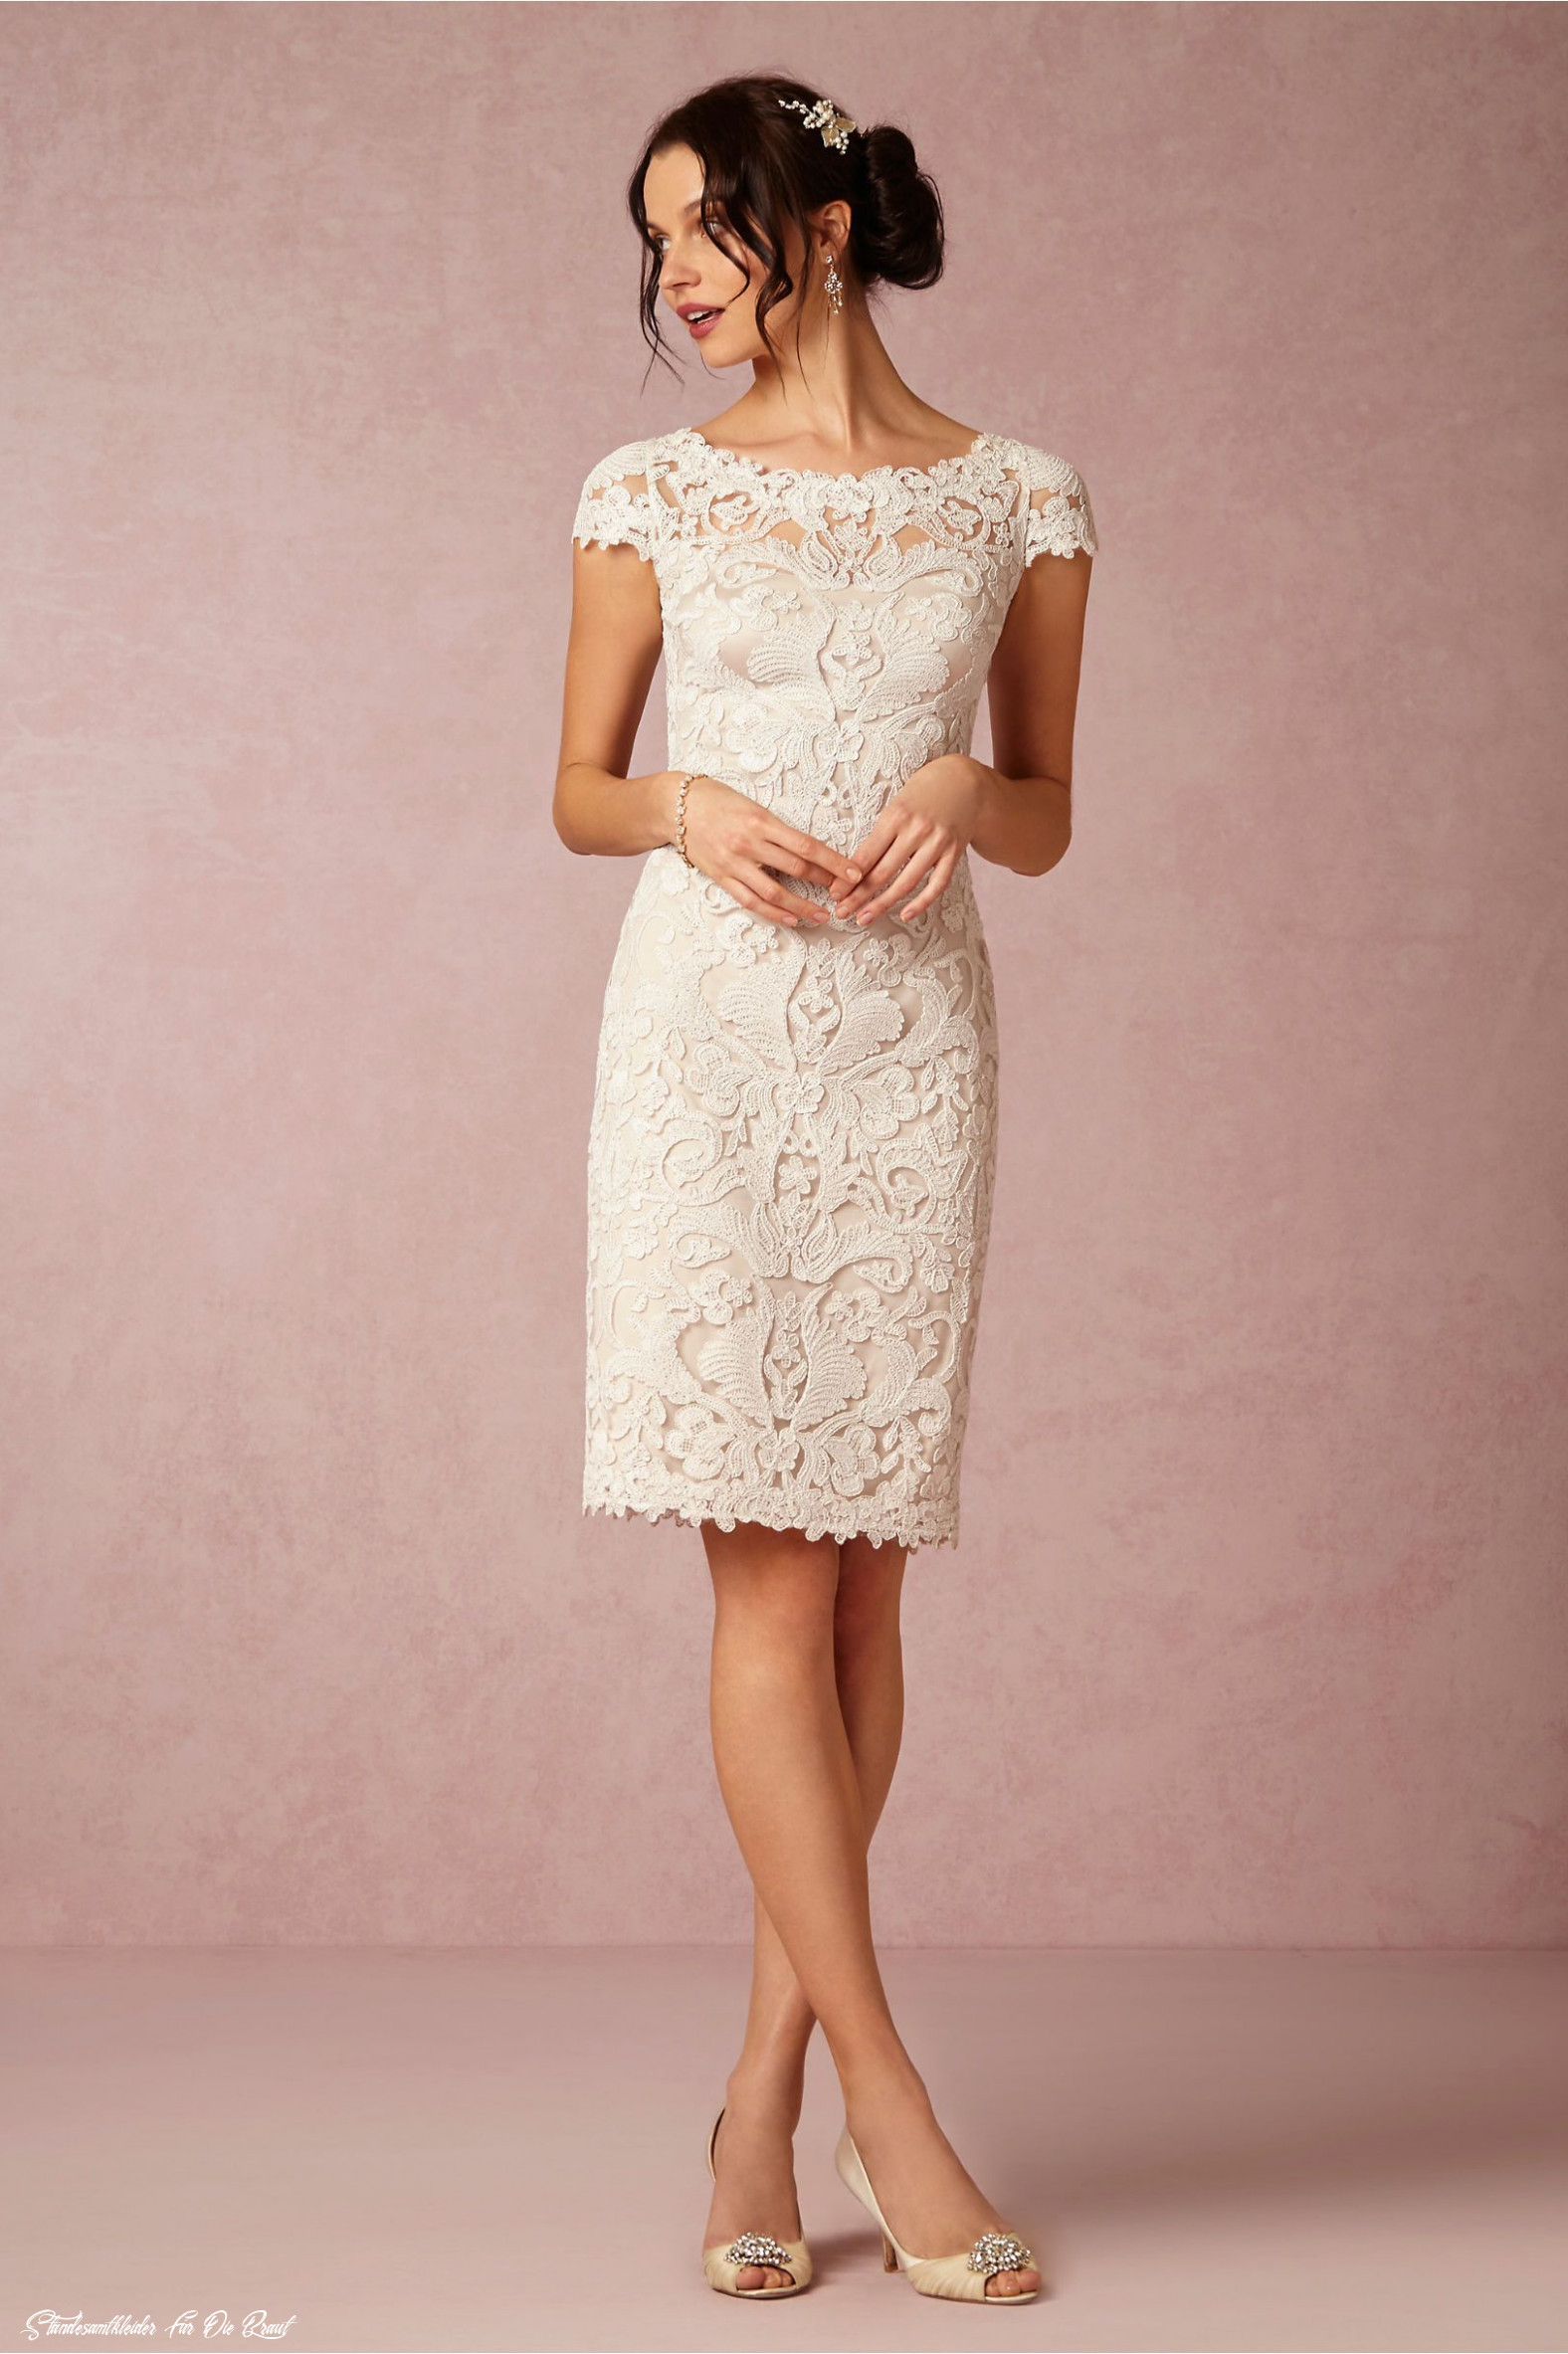 hadley dress in new at bhldn simple wedding dress short, bride